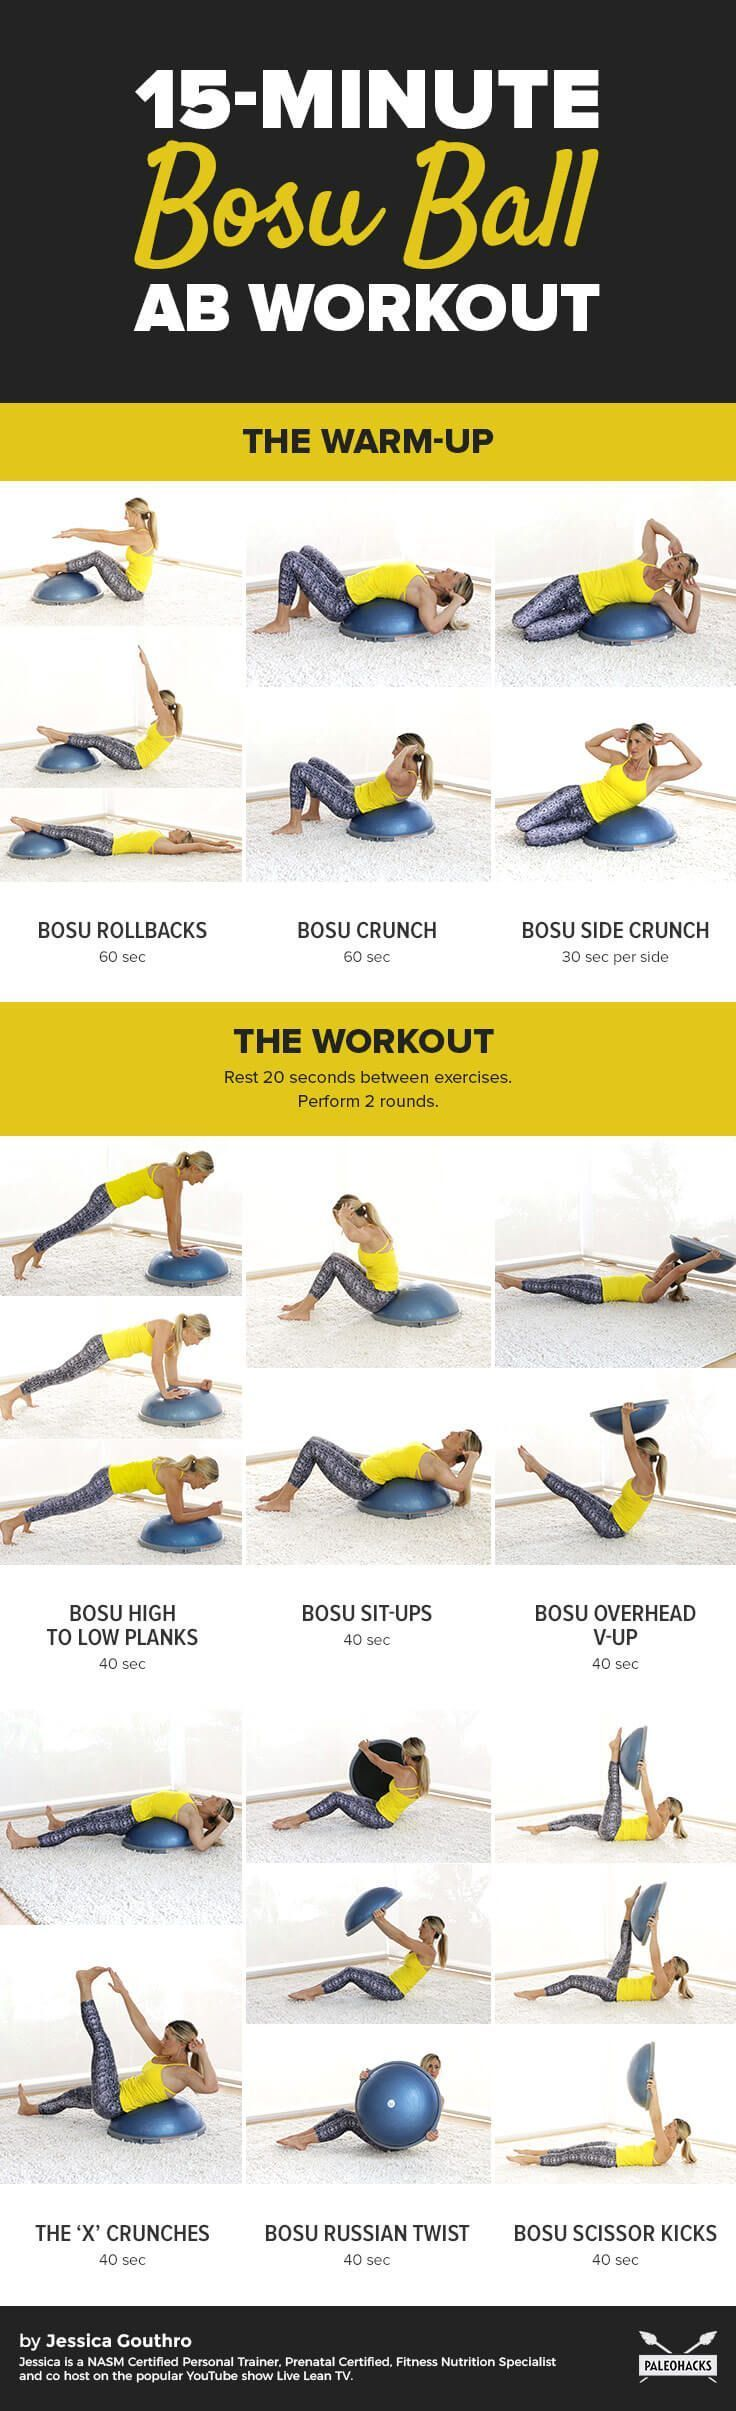 Best workout tip : Workout : This bosu ball ab workout tightens and tones your abs from every angle. Do this